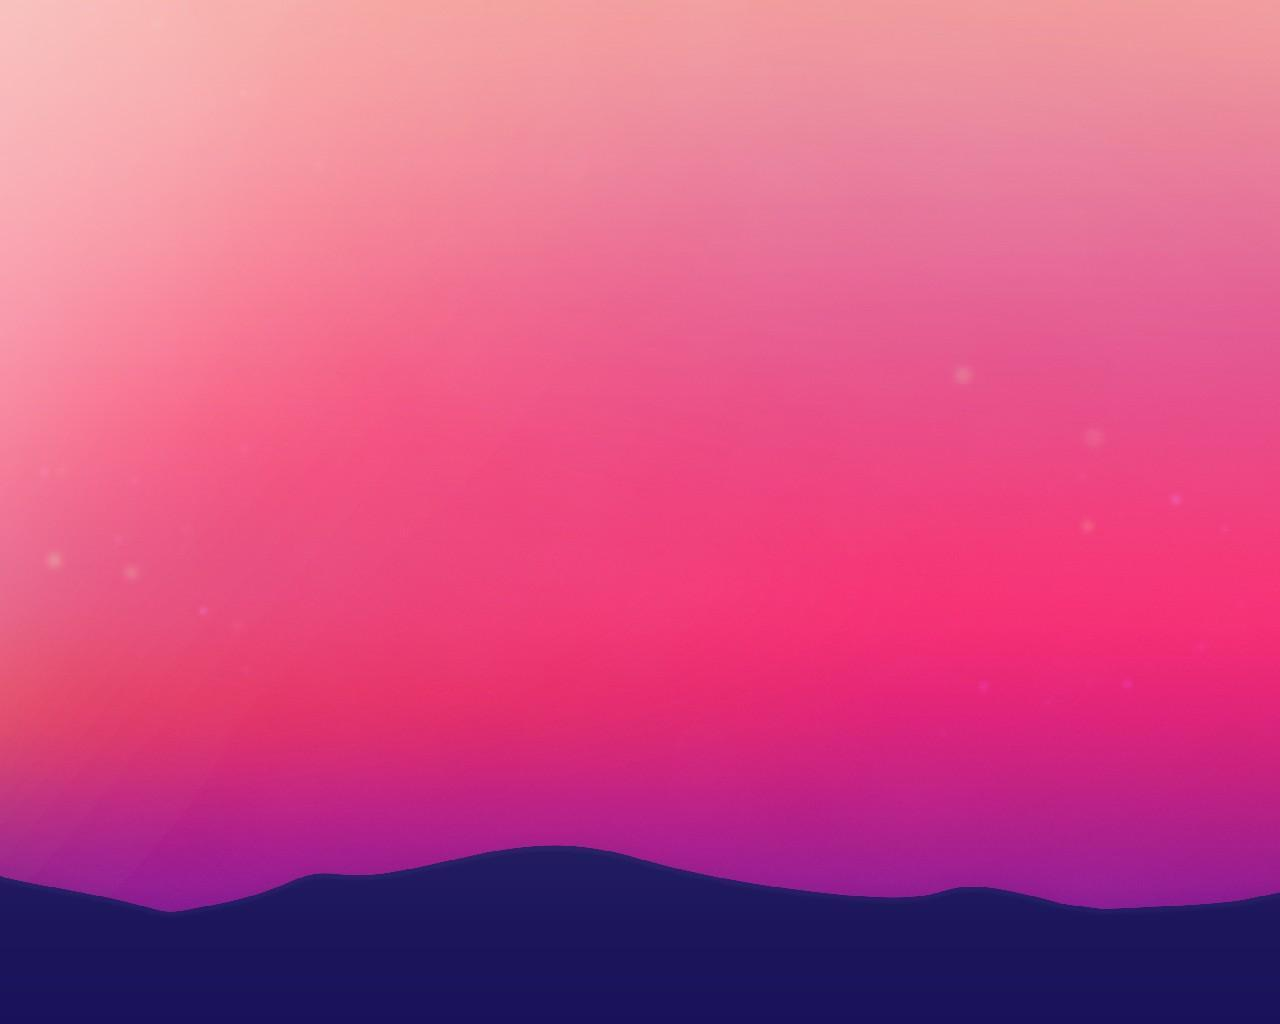 Material Design Hd Theme Wallpaper For Android Apk Download